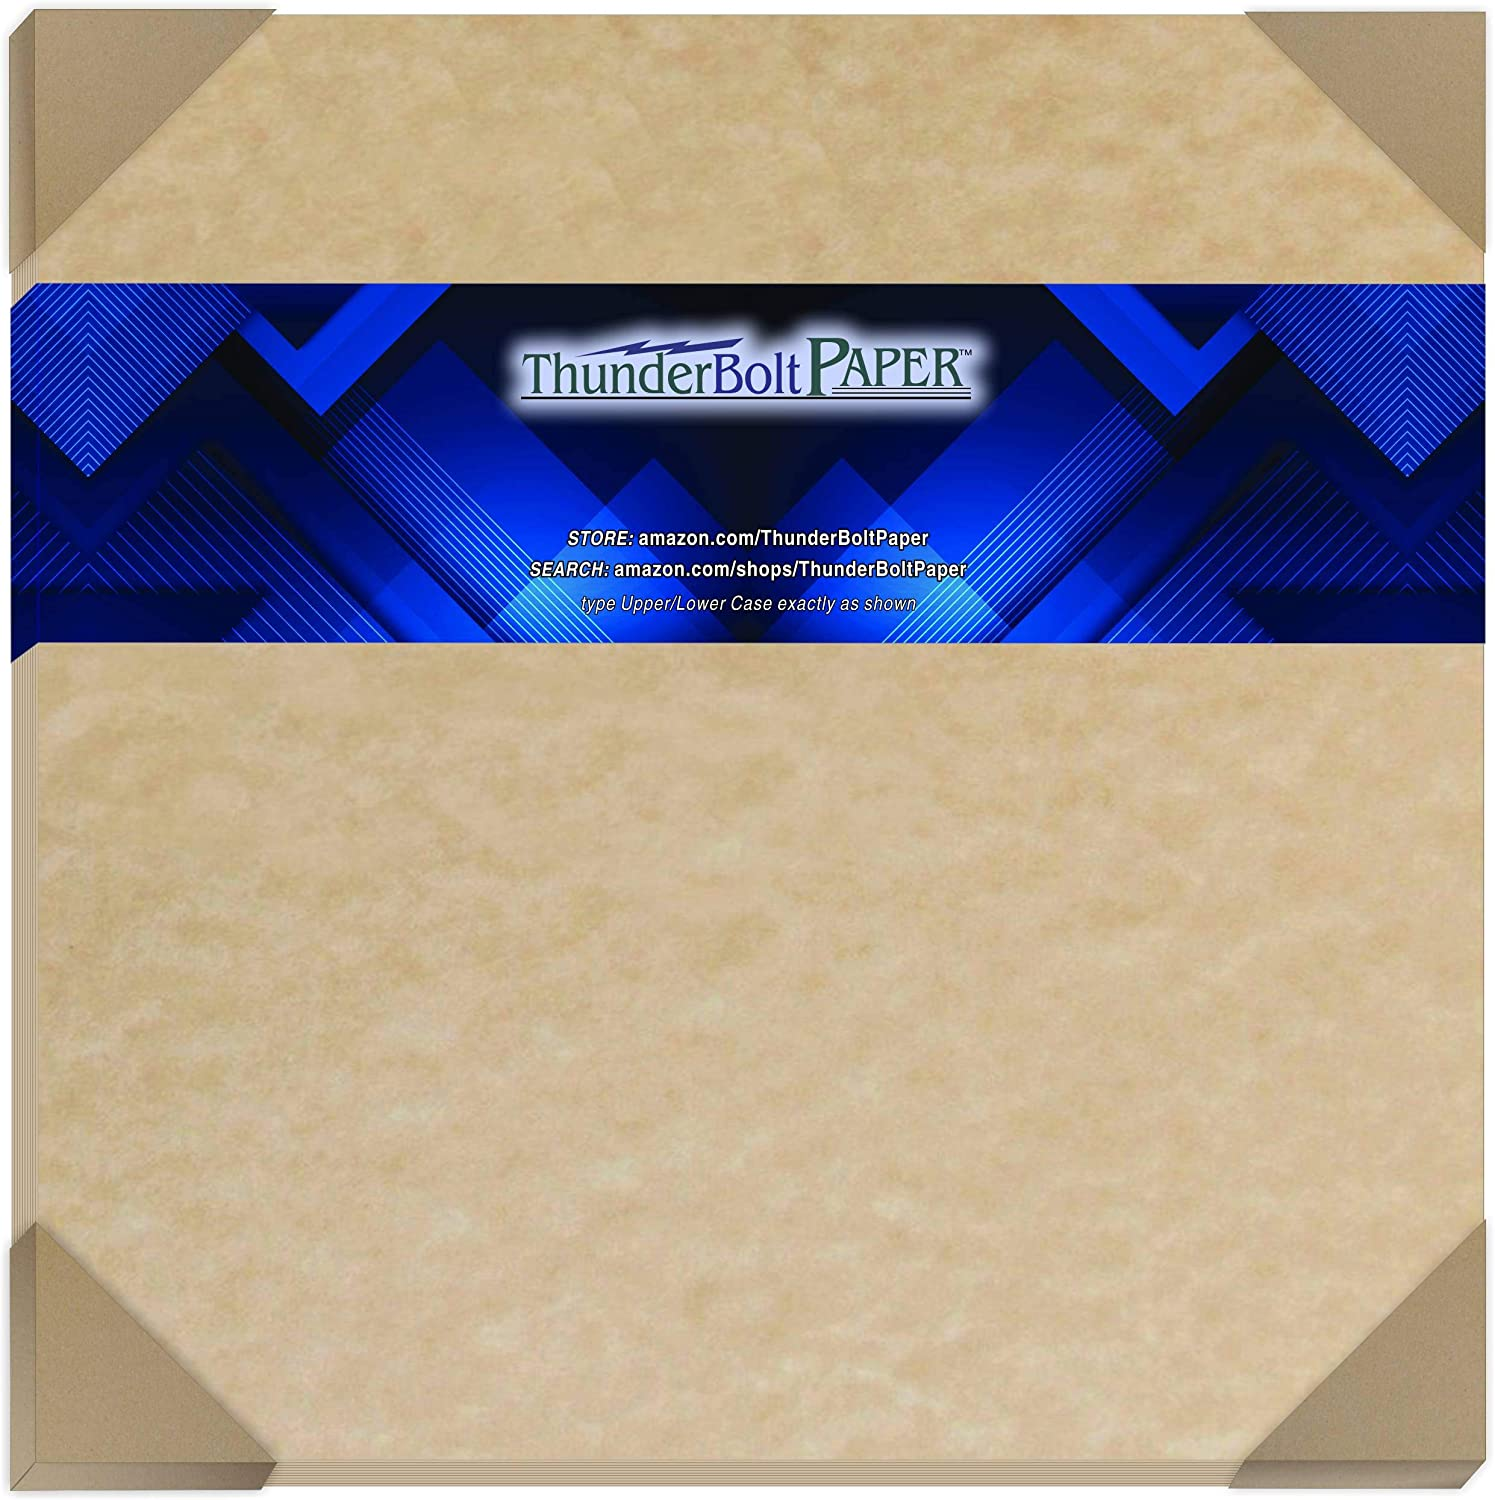 12X12 Inches 25 Sandy Brown Parchment 65lb Cover Weight Paper Printable Cardstock Colored Sheets Old Parchment Semblance 12 X 12 Scrapbook Album|Cover Size